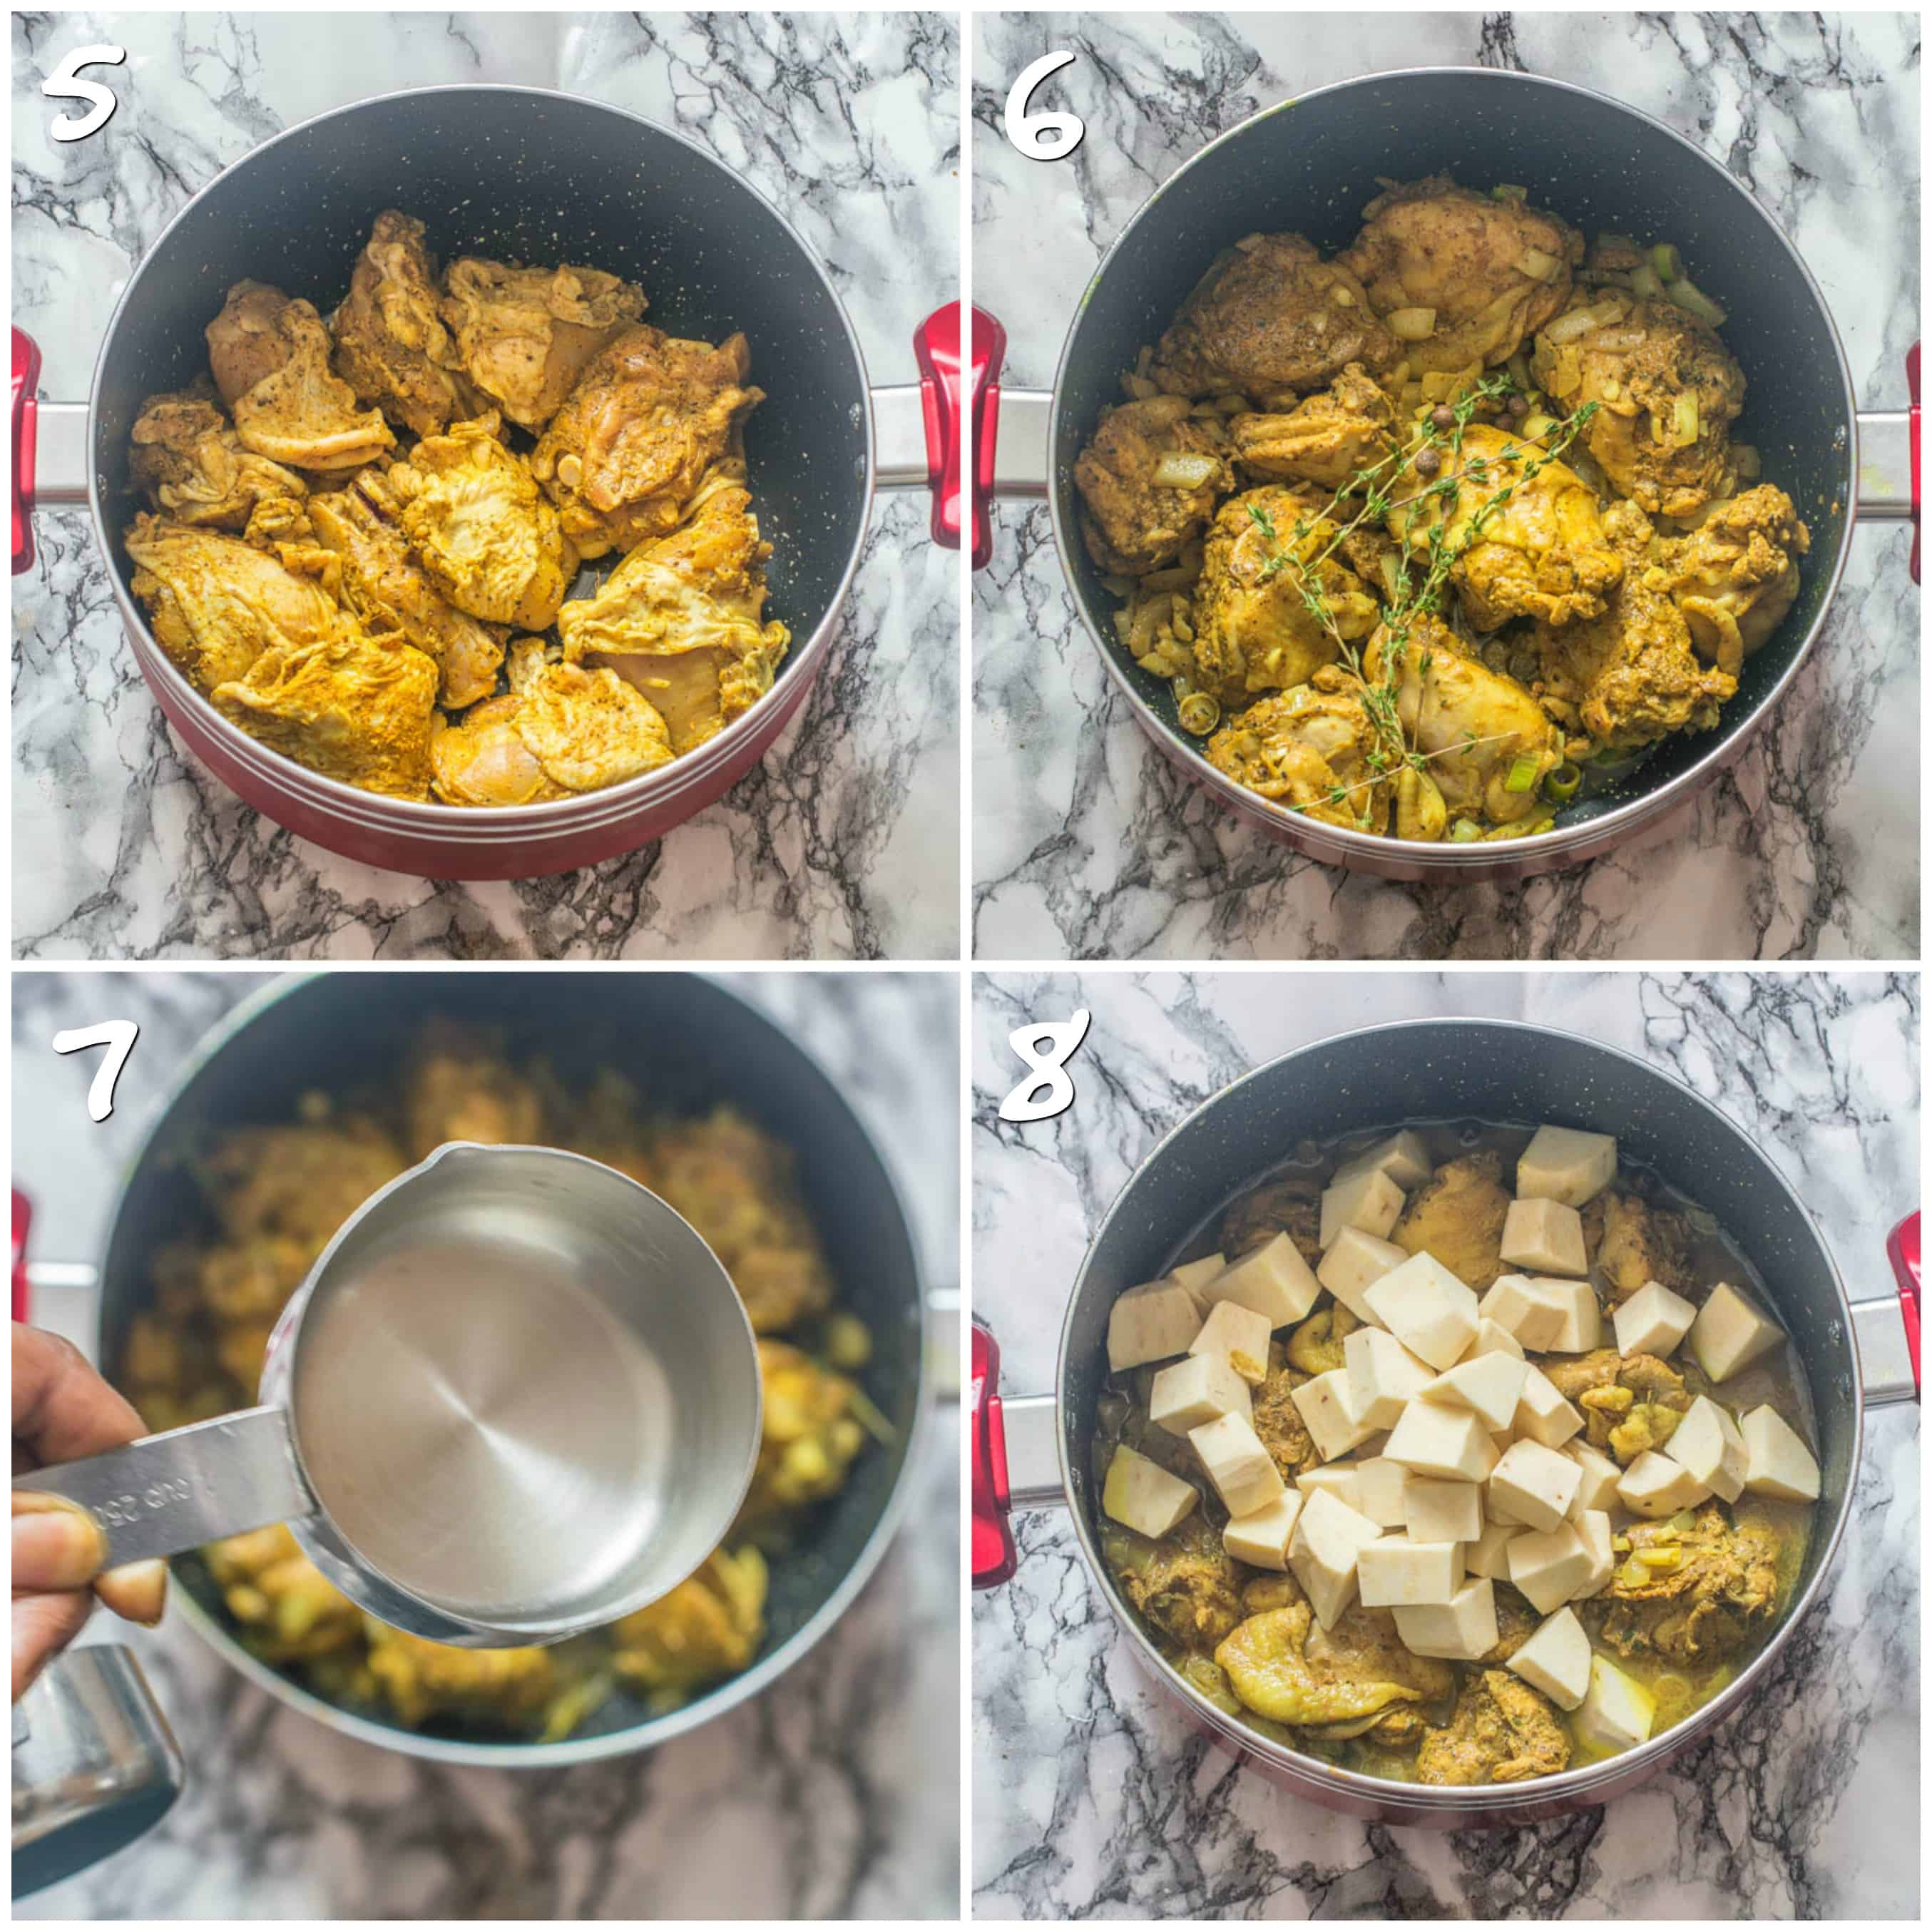 seasoned chicken in red pot, fresh thyme and chicken in pot, pouring water in pot, chicken thighs and potatoes in pot